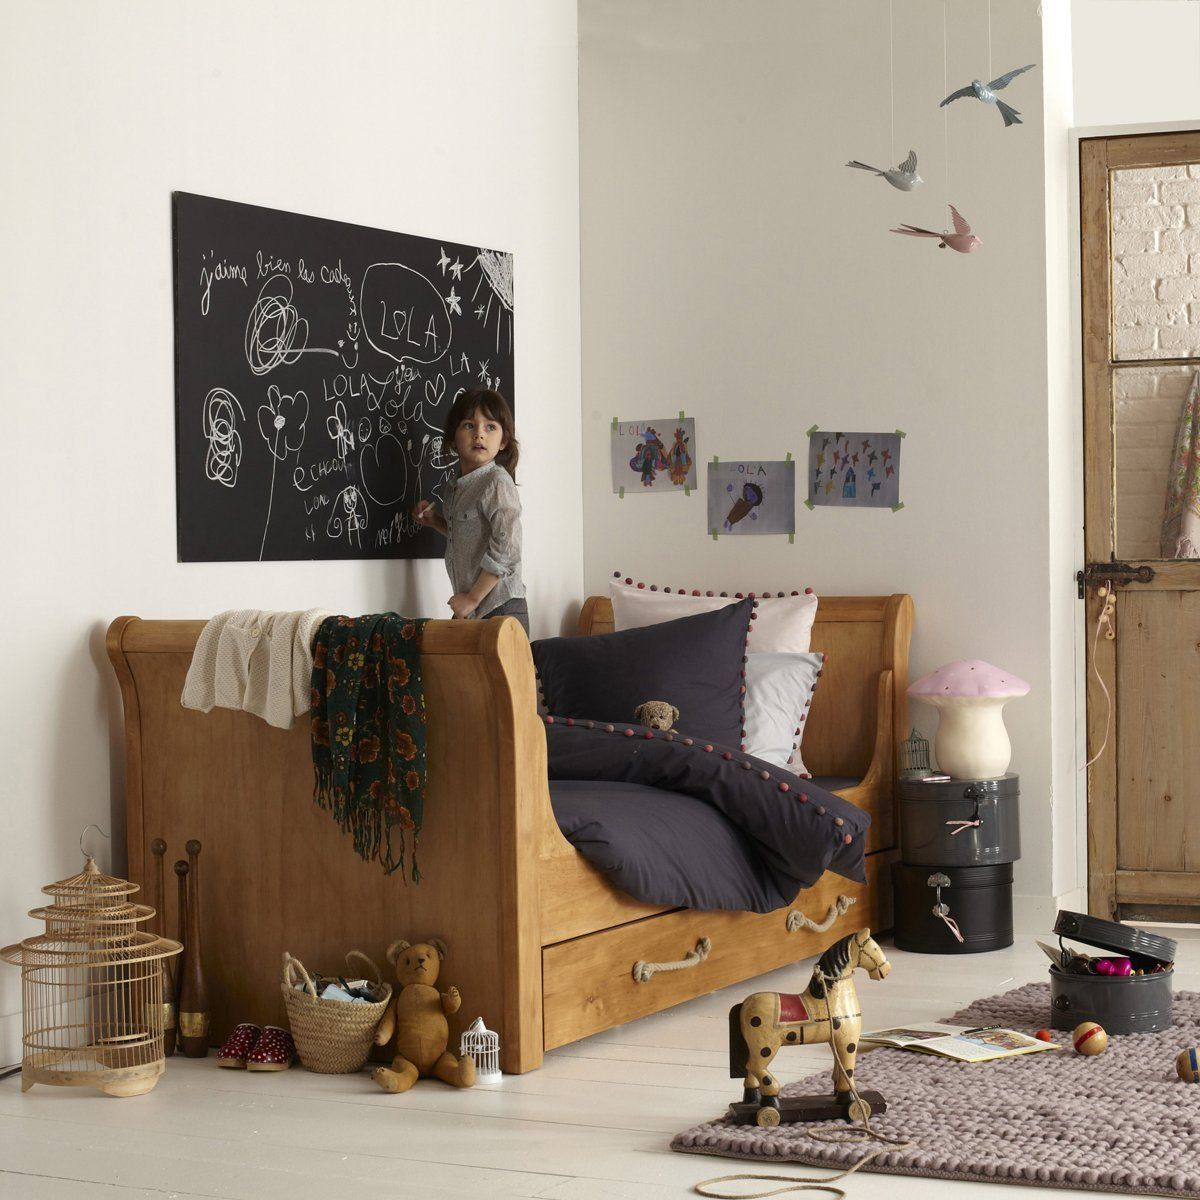 nouvelle collection am pm sonia saelens d co. Black Bedroom Furniture Sets. Home Design Ideas